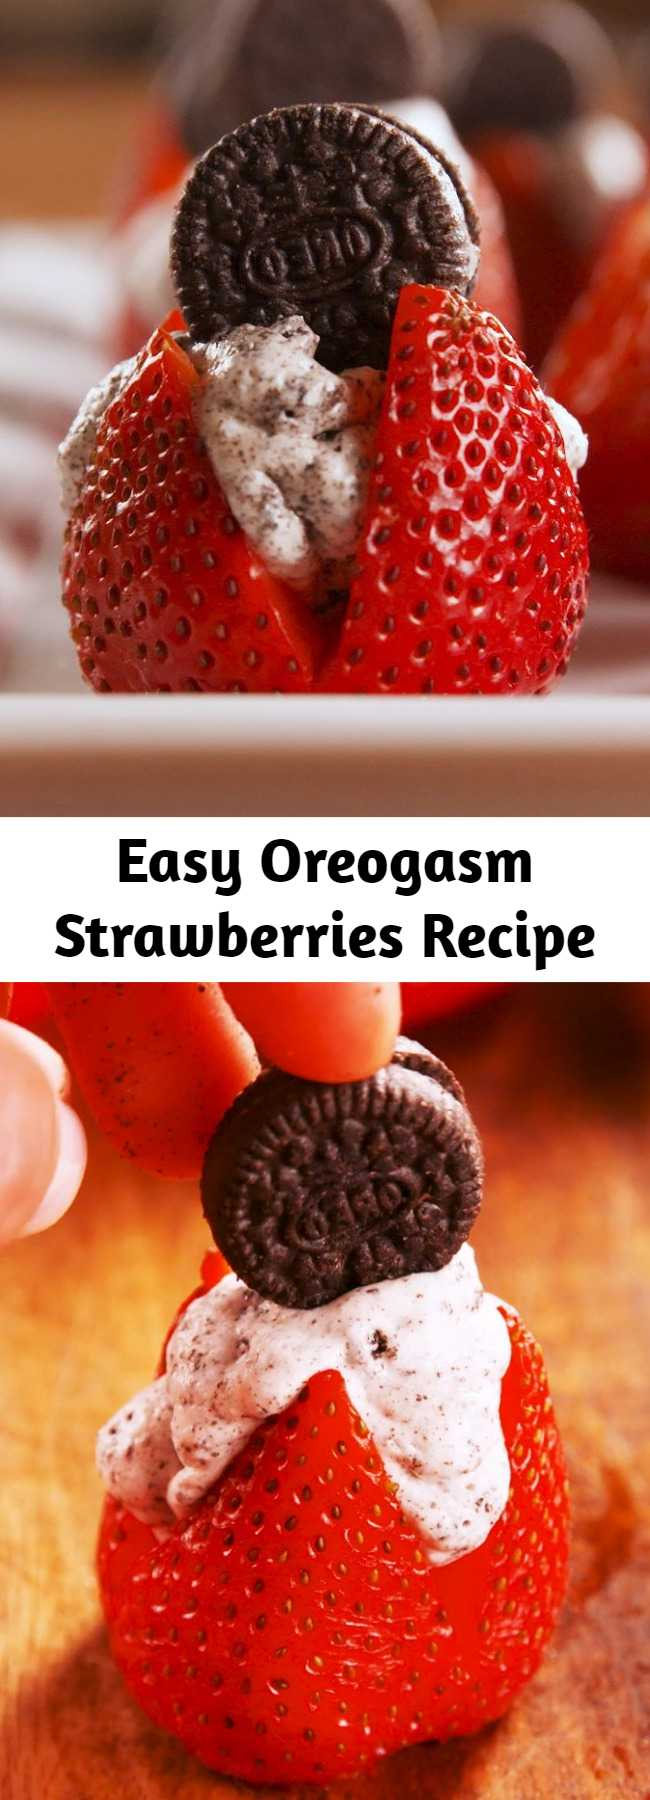 Easy Oreogasm Strawberries Recipe - Quick and easy and delectable. Stuffed with cookies n' cream filling, these treats give chocolate covered strawberries a run for their money.